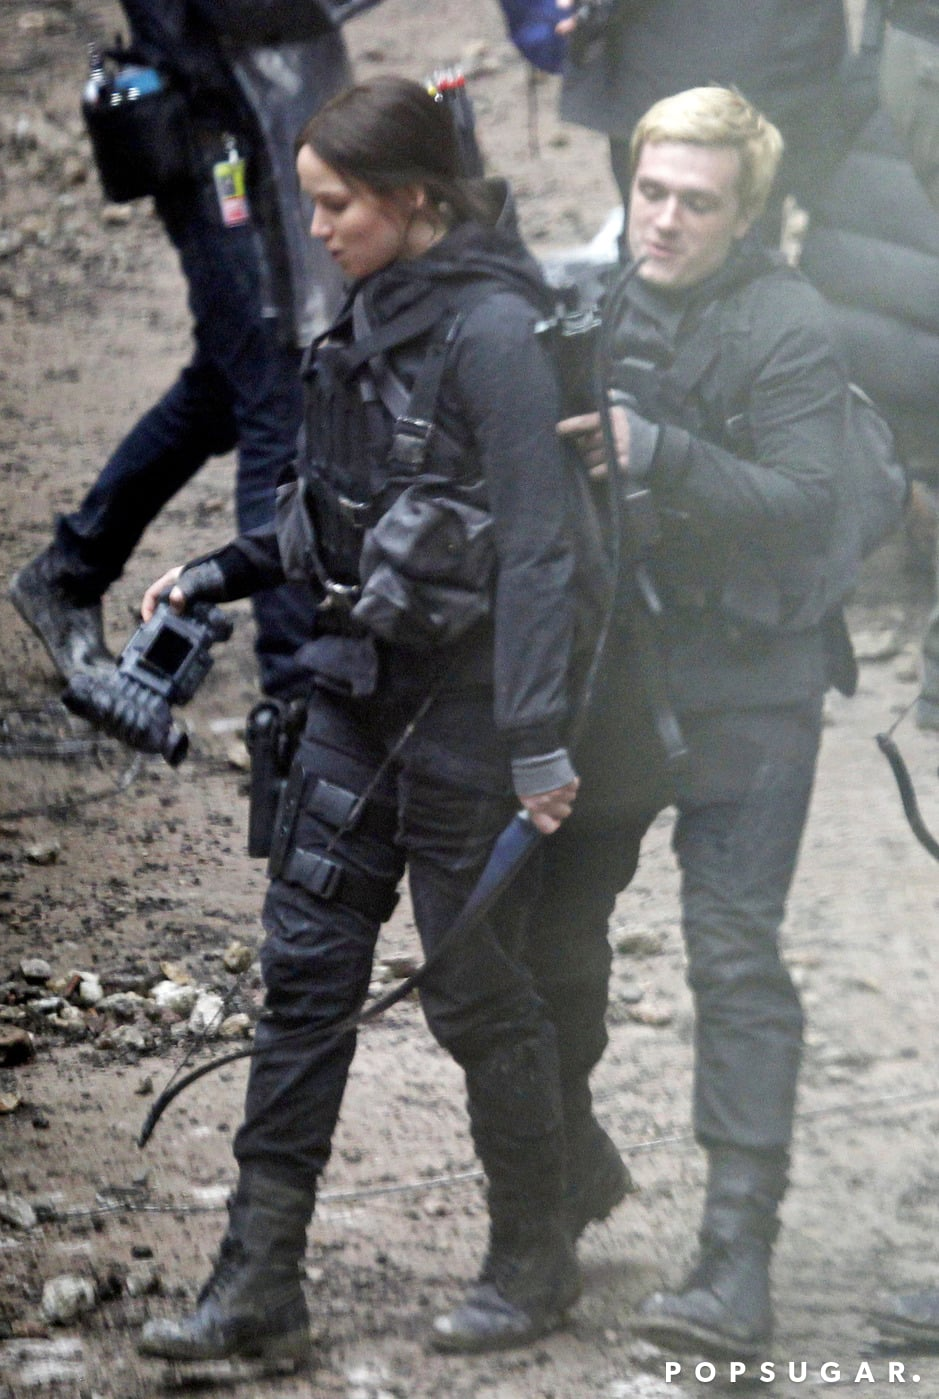 Hutcherson helped Lawrence with her gear.